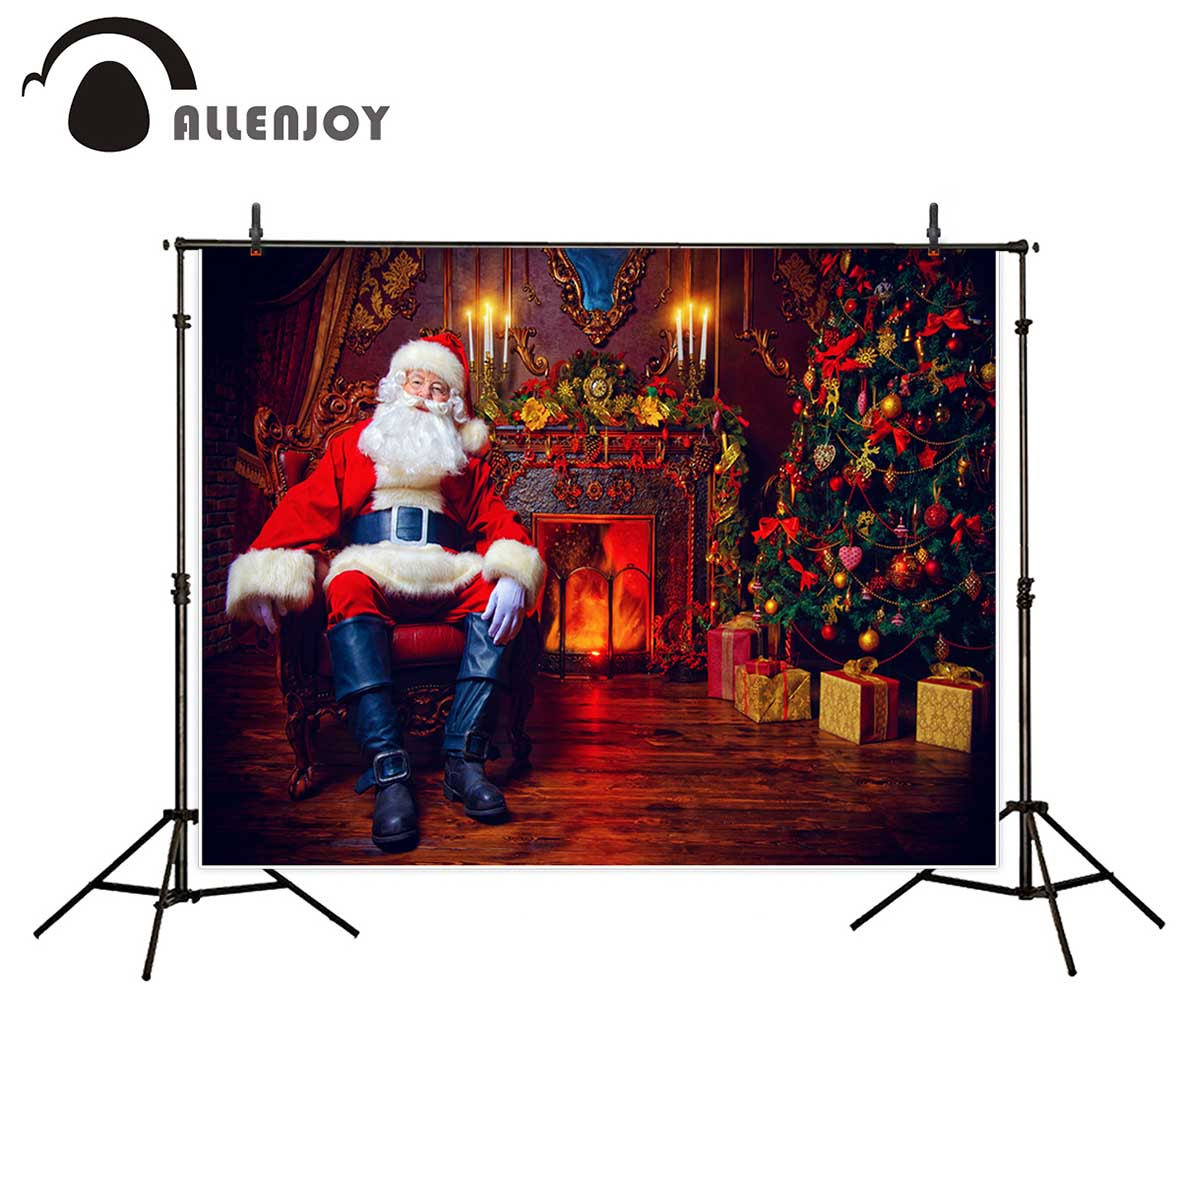 Allenjoy photography background santa claus indoor fireplace christmas tree resting armchair backdrop Photo background studio christmas background vinyl photography backdrop christmas tree candles gifts children photo backdgrounds for studio zr 196